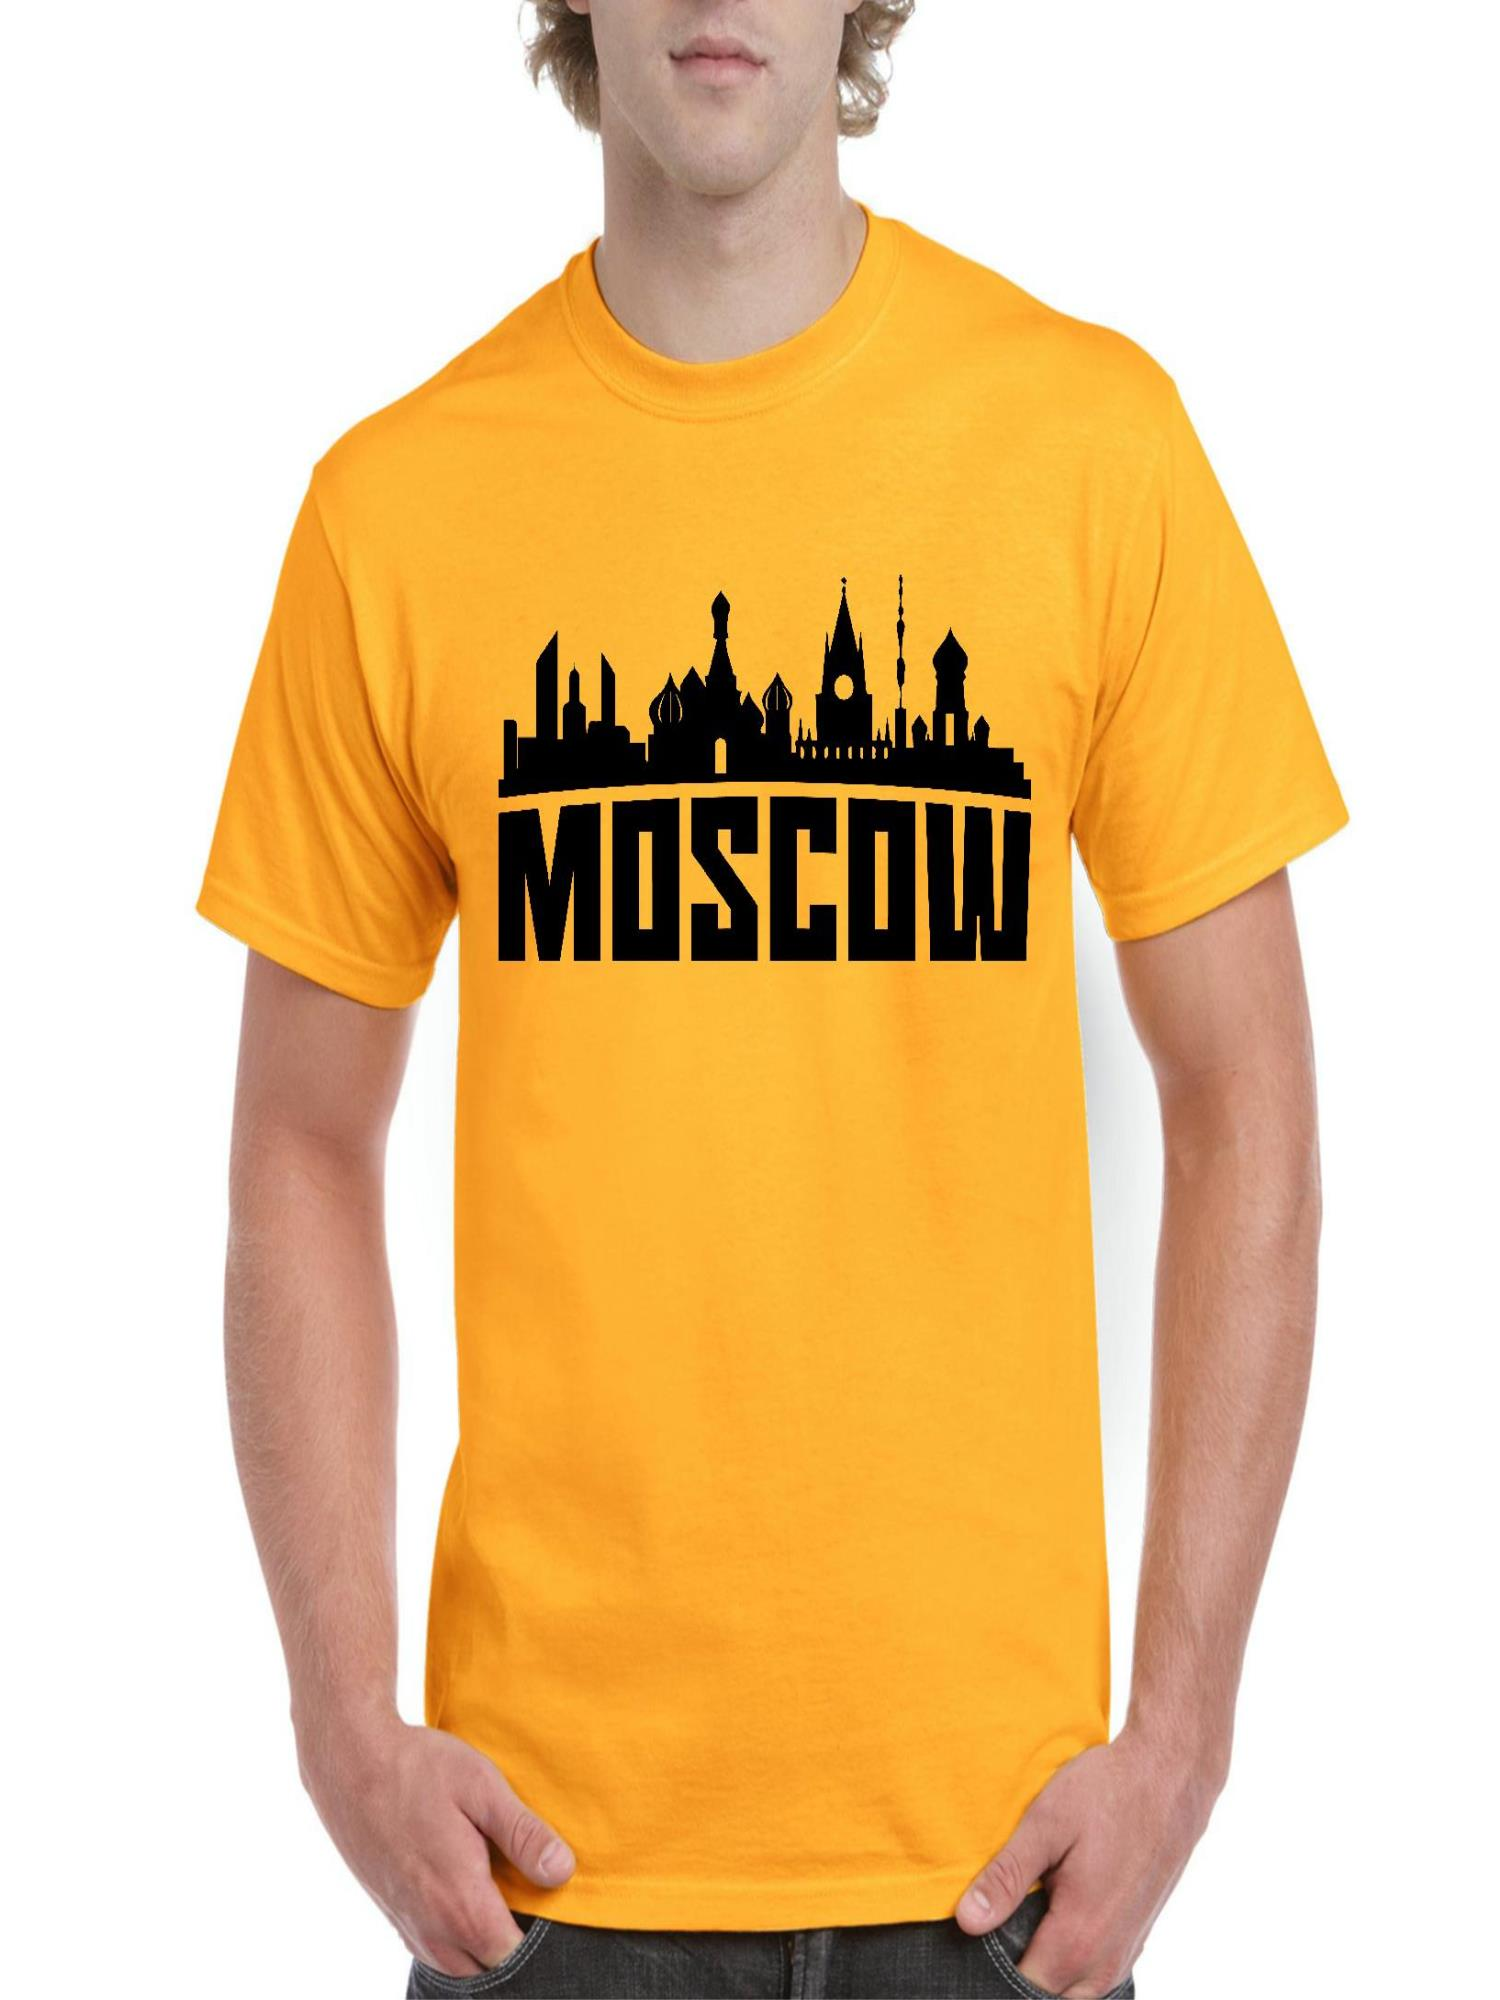 Moscow Russia Men's Short Sleeve T-Shirt